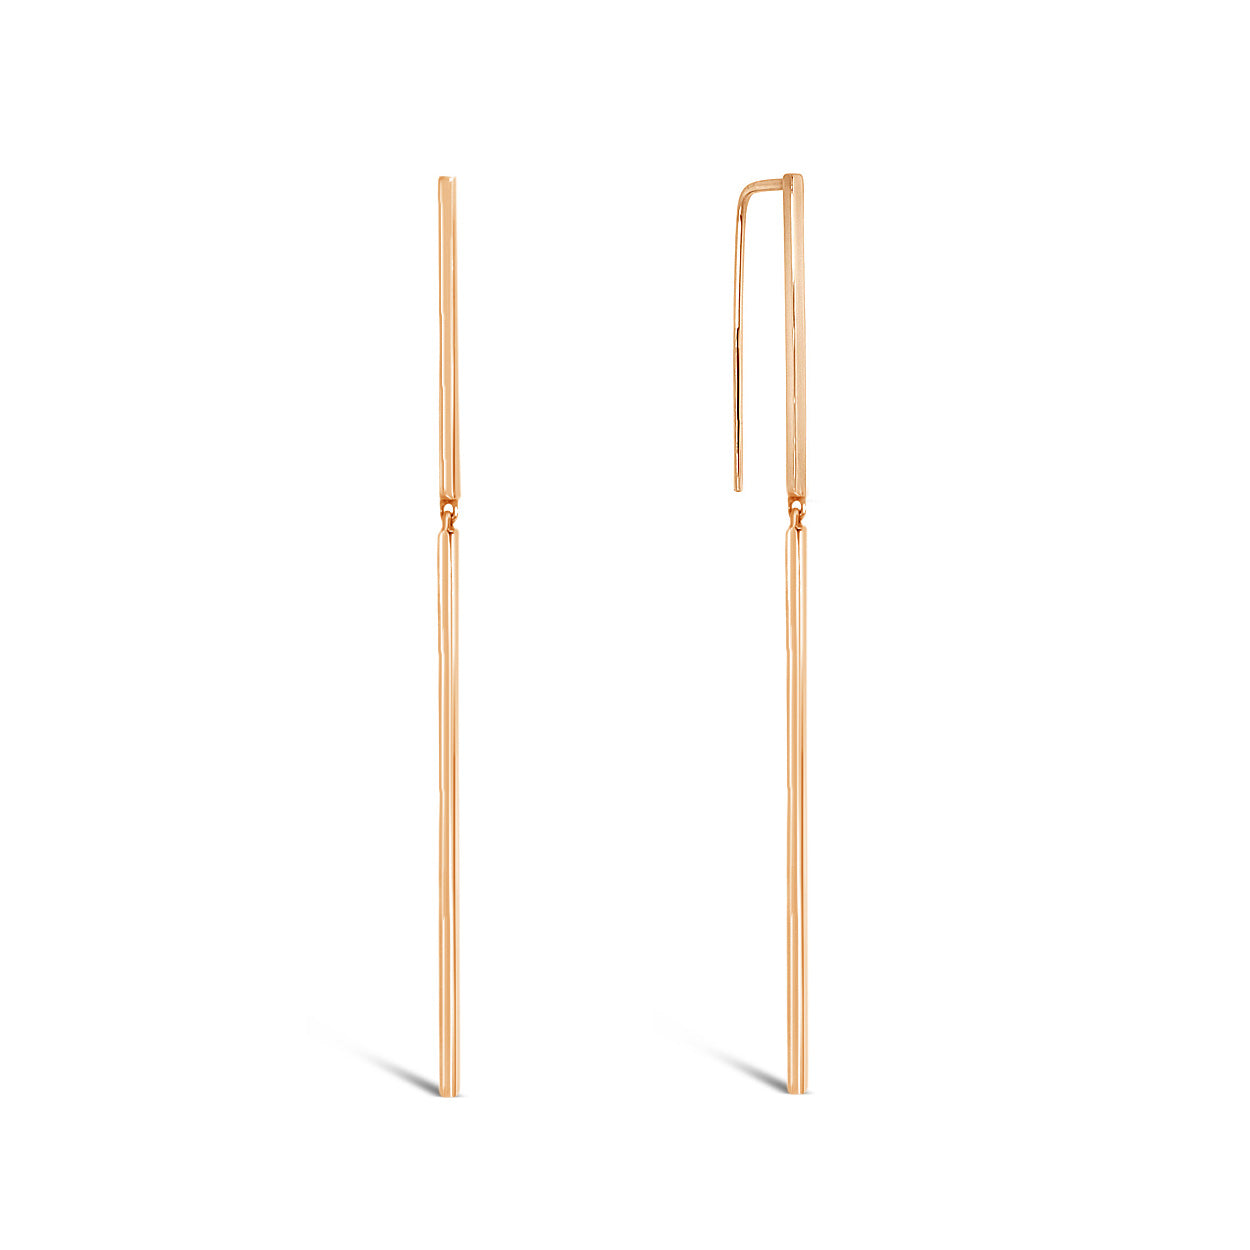 rose-gold-drop-Earrings-Line-long-minimalist-contemporary-sydney-jewellery-designer-lizunova